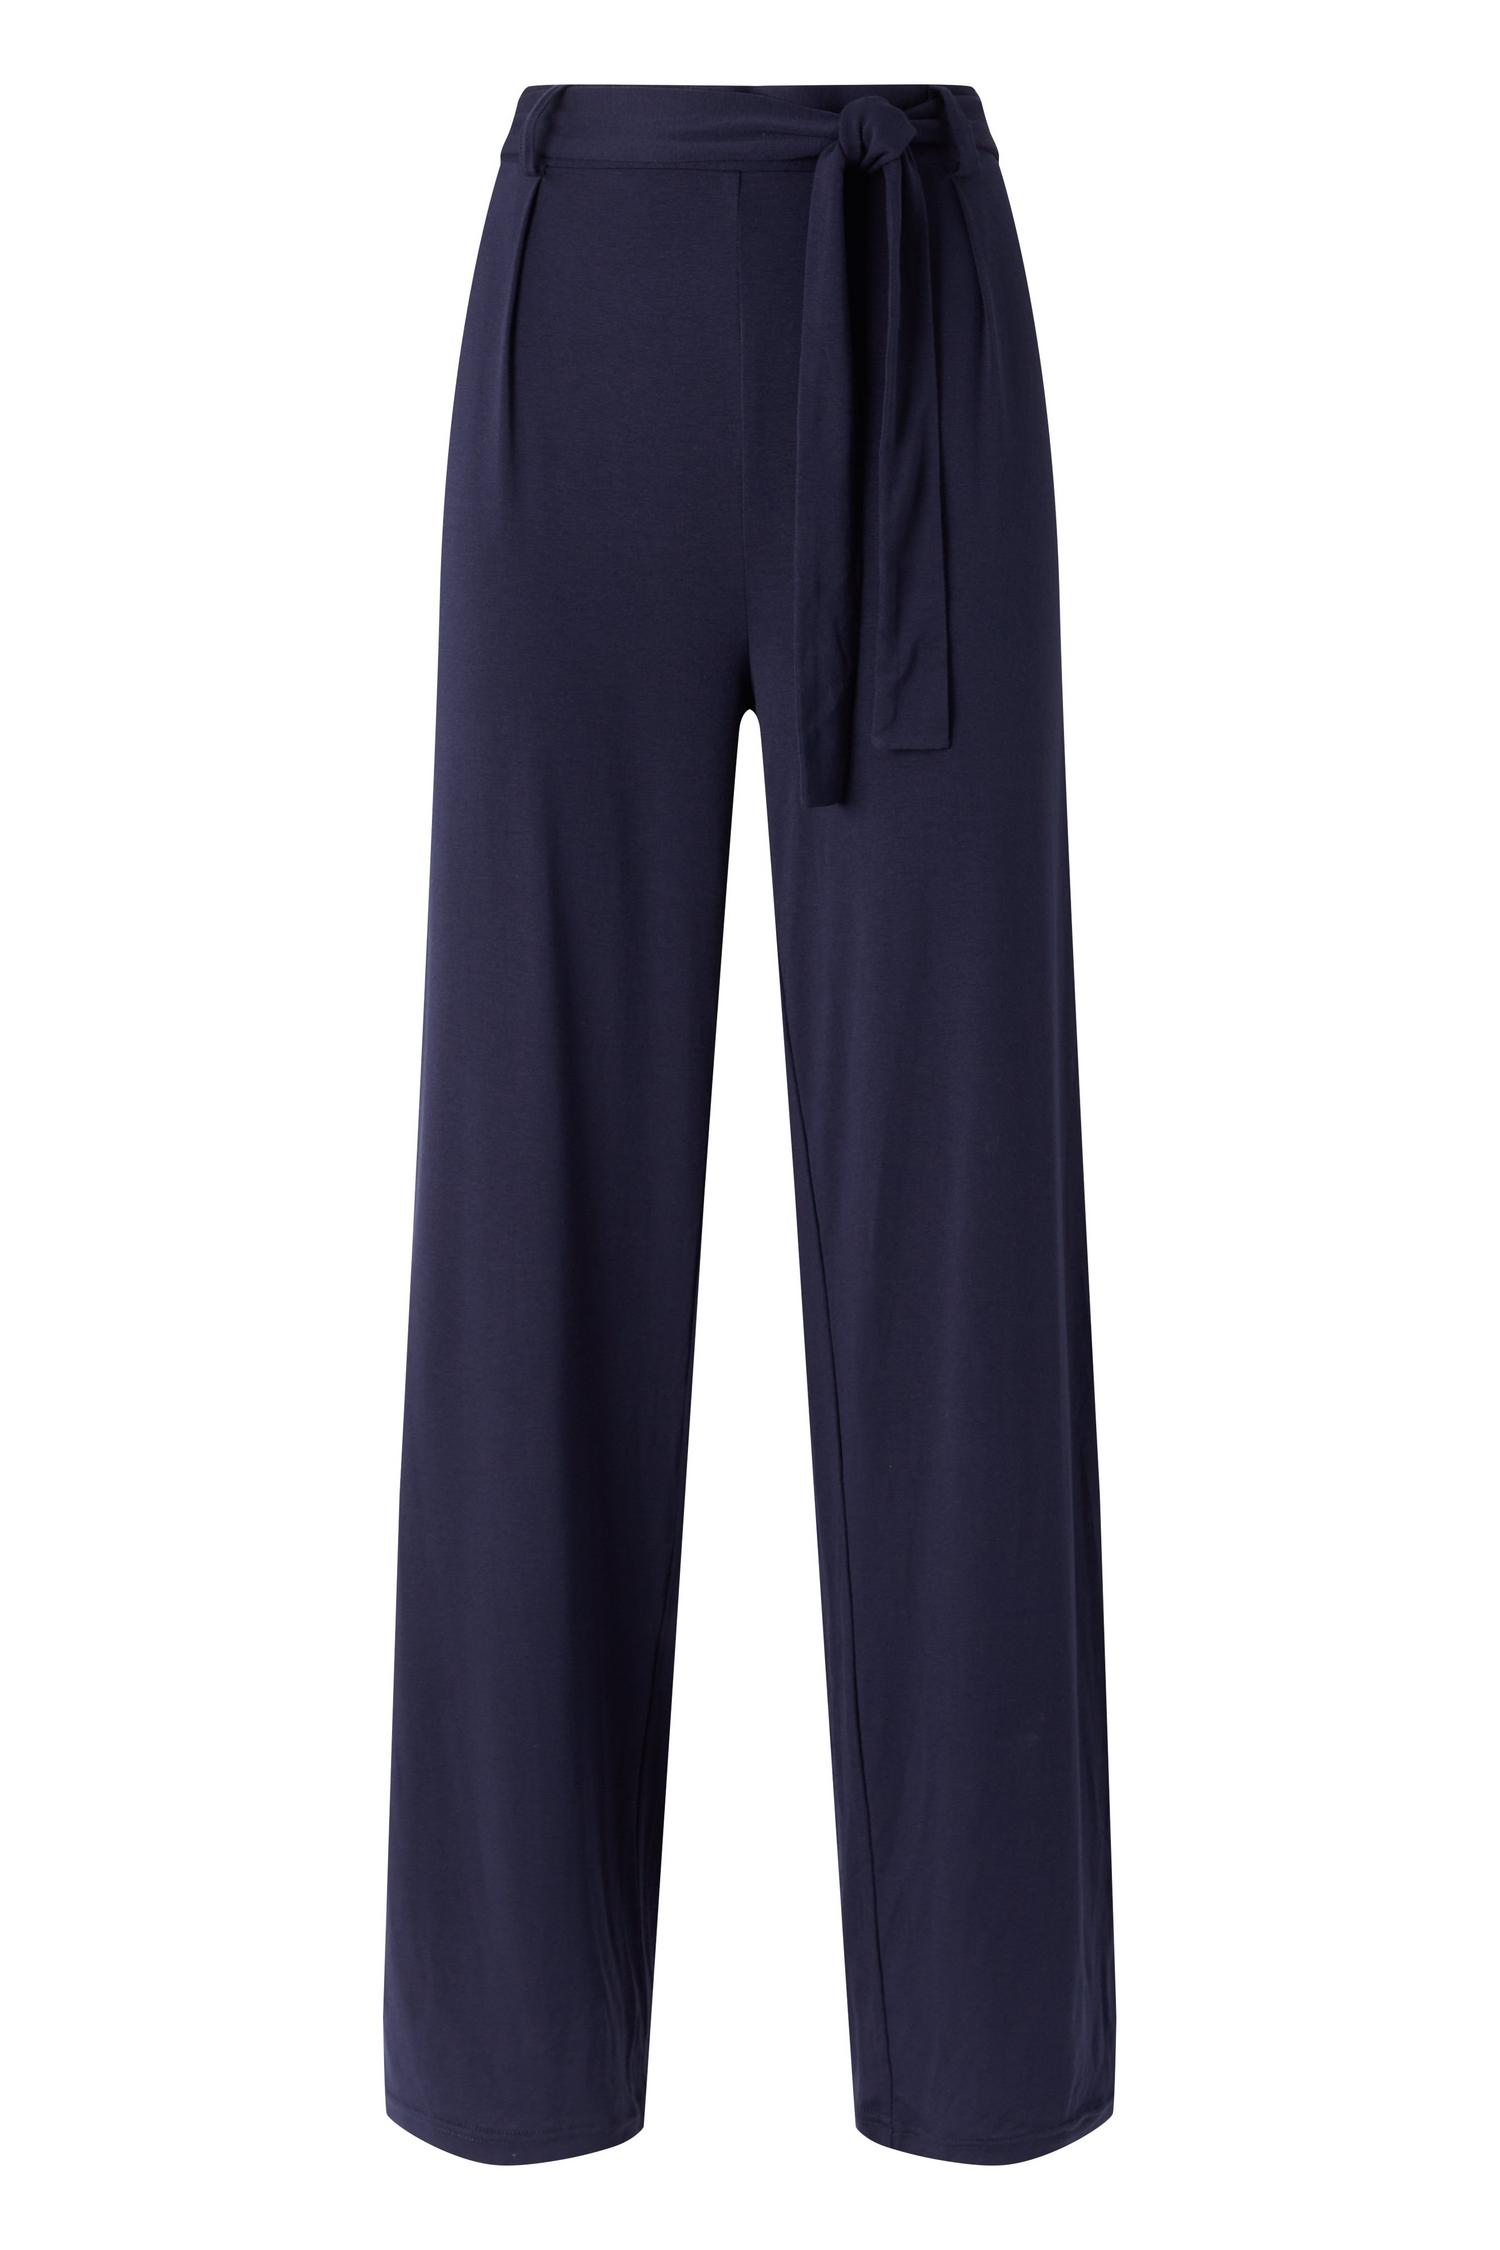 148 Navy Jersey Wide Leg Trouser image number 4